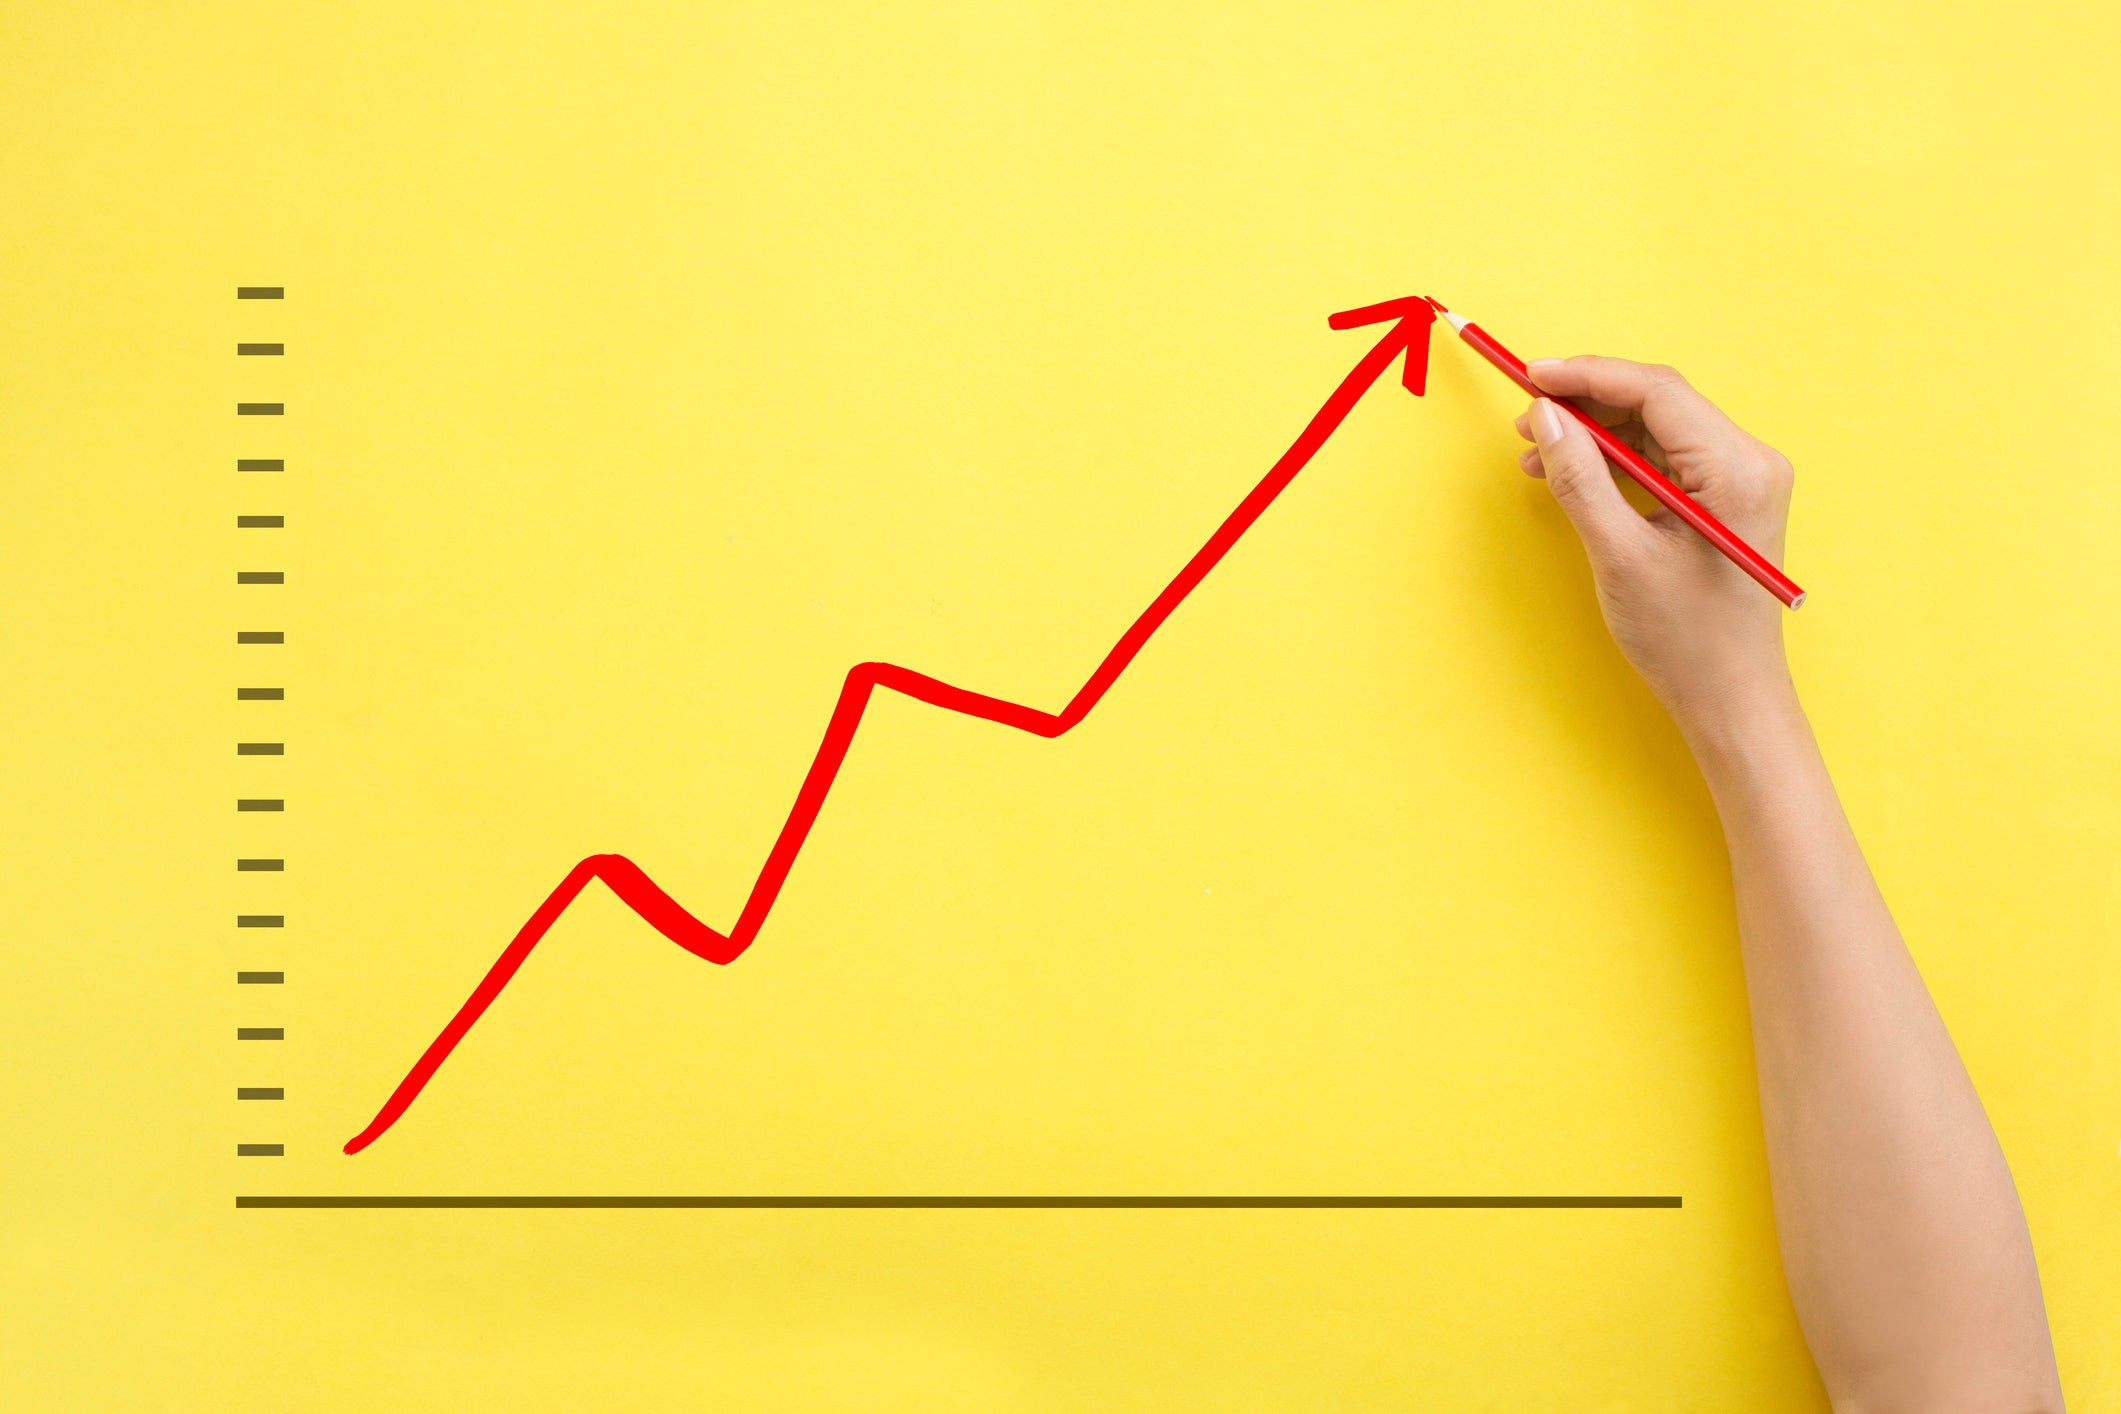 3 Growth Stocks For In The Know Investors Motley Fool